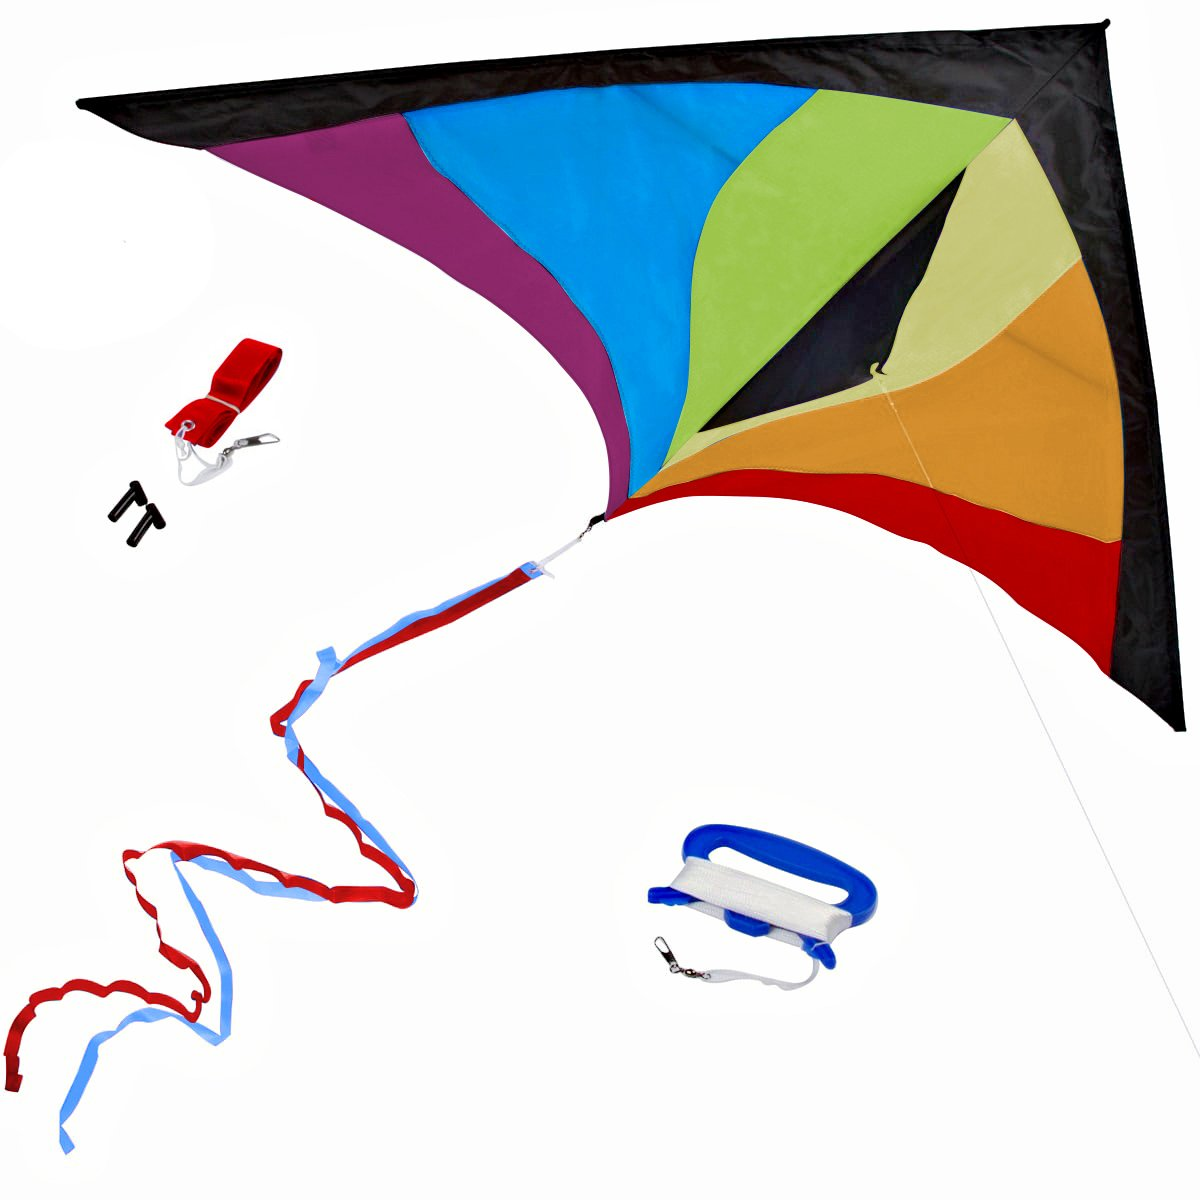 Best Rainbow Delta Kite, Easy Fly for Kids and Beginners, Single Line w/Tail Ribbons, Stunning Multi-Colors, Materials, Large, Meticulous Design and Testing + Guarantee + Bonuses! by StuffKidsLove